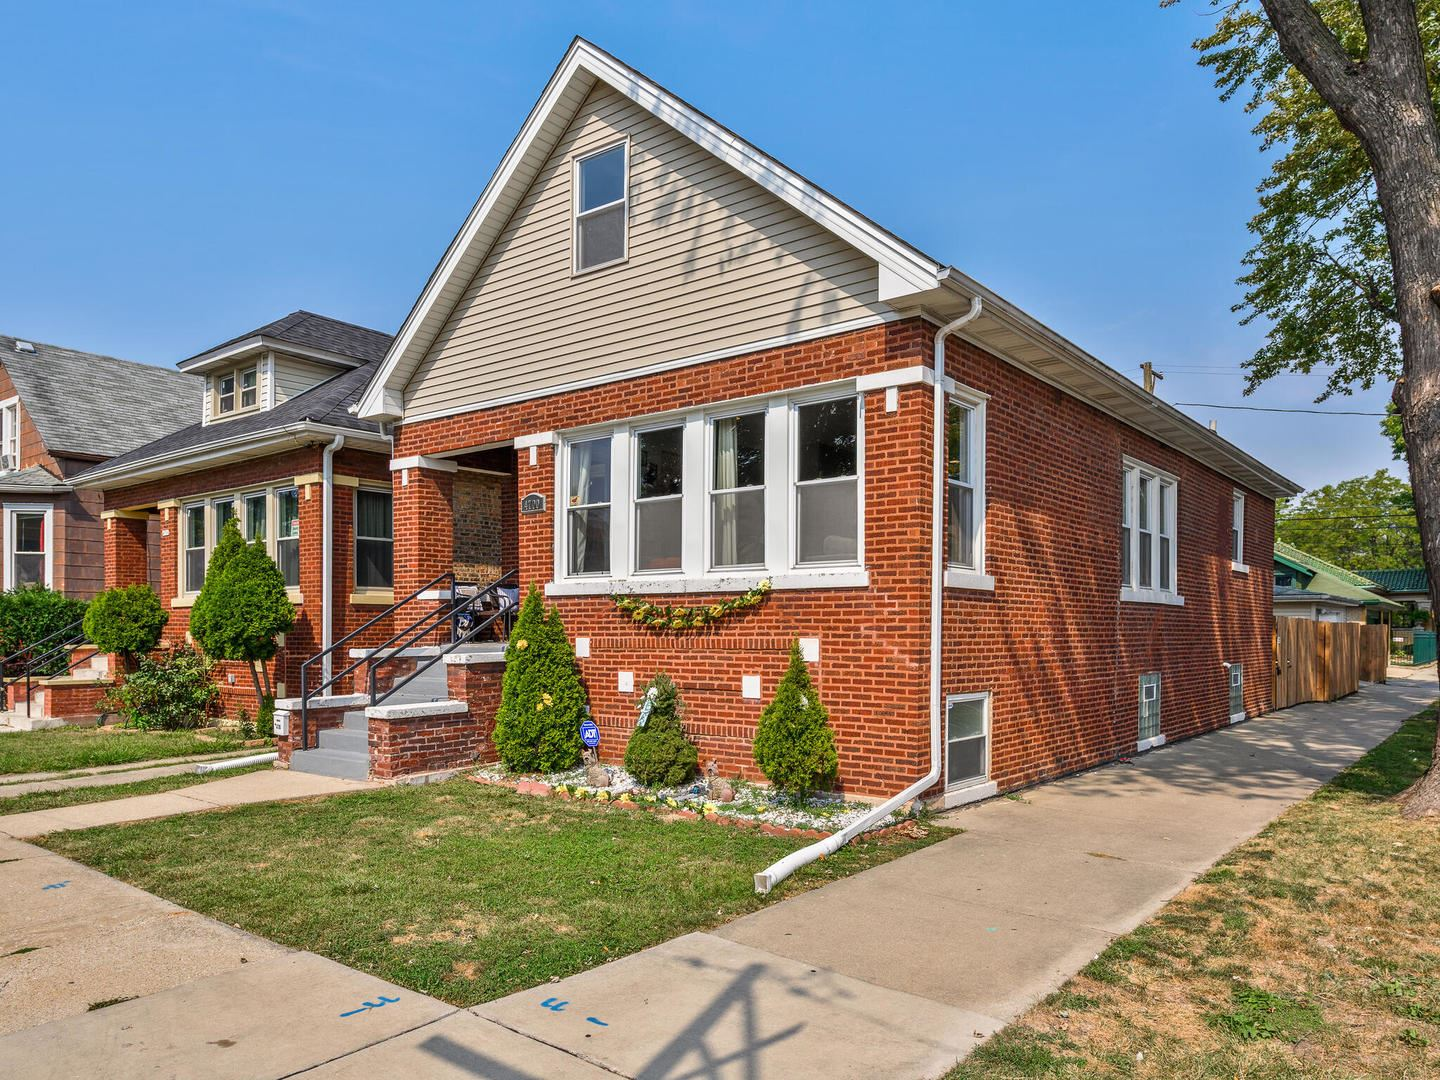 4700 W Deming Place, Chicago, IL 60639 - #: 11244924